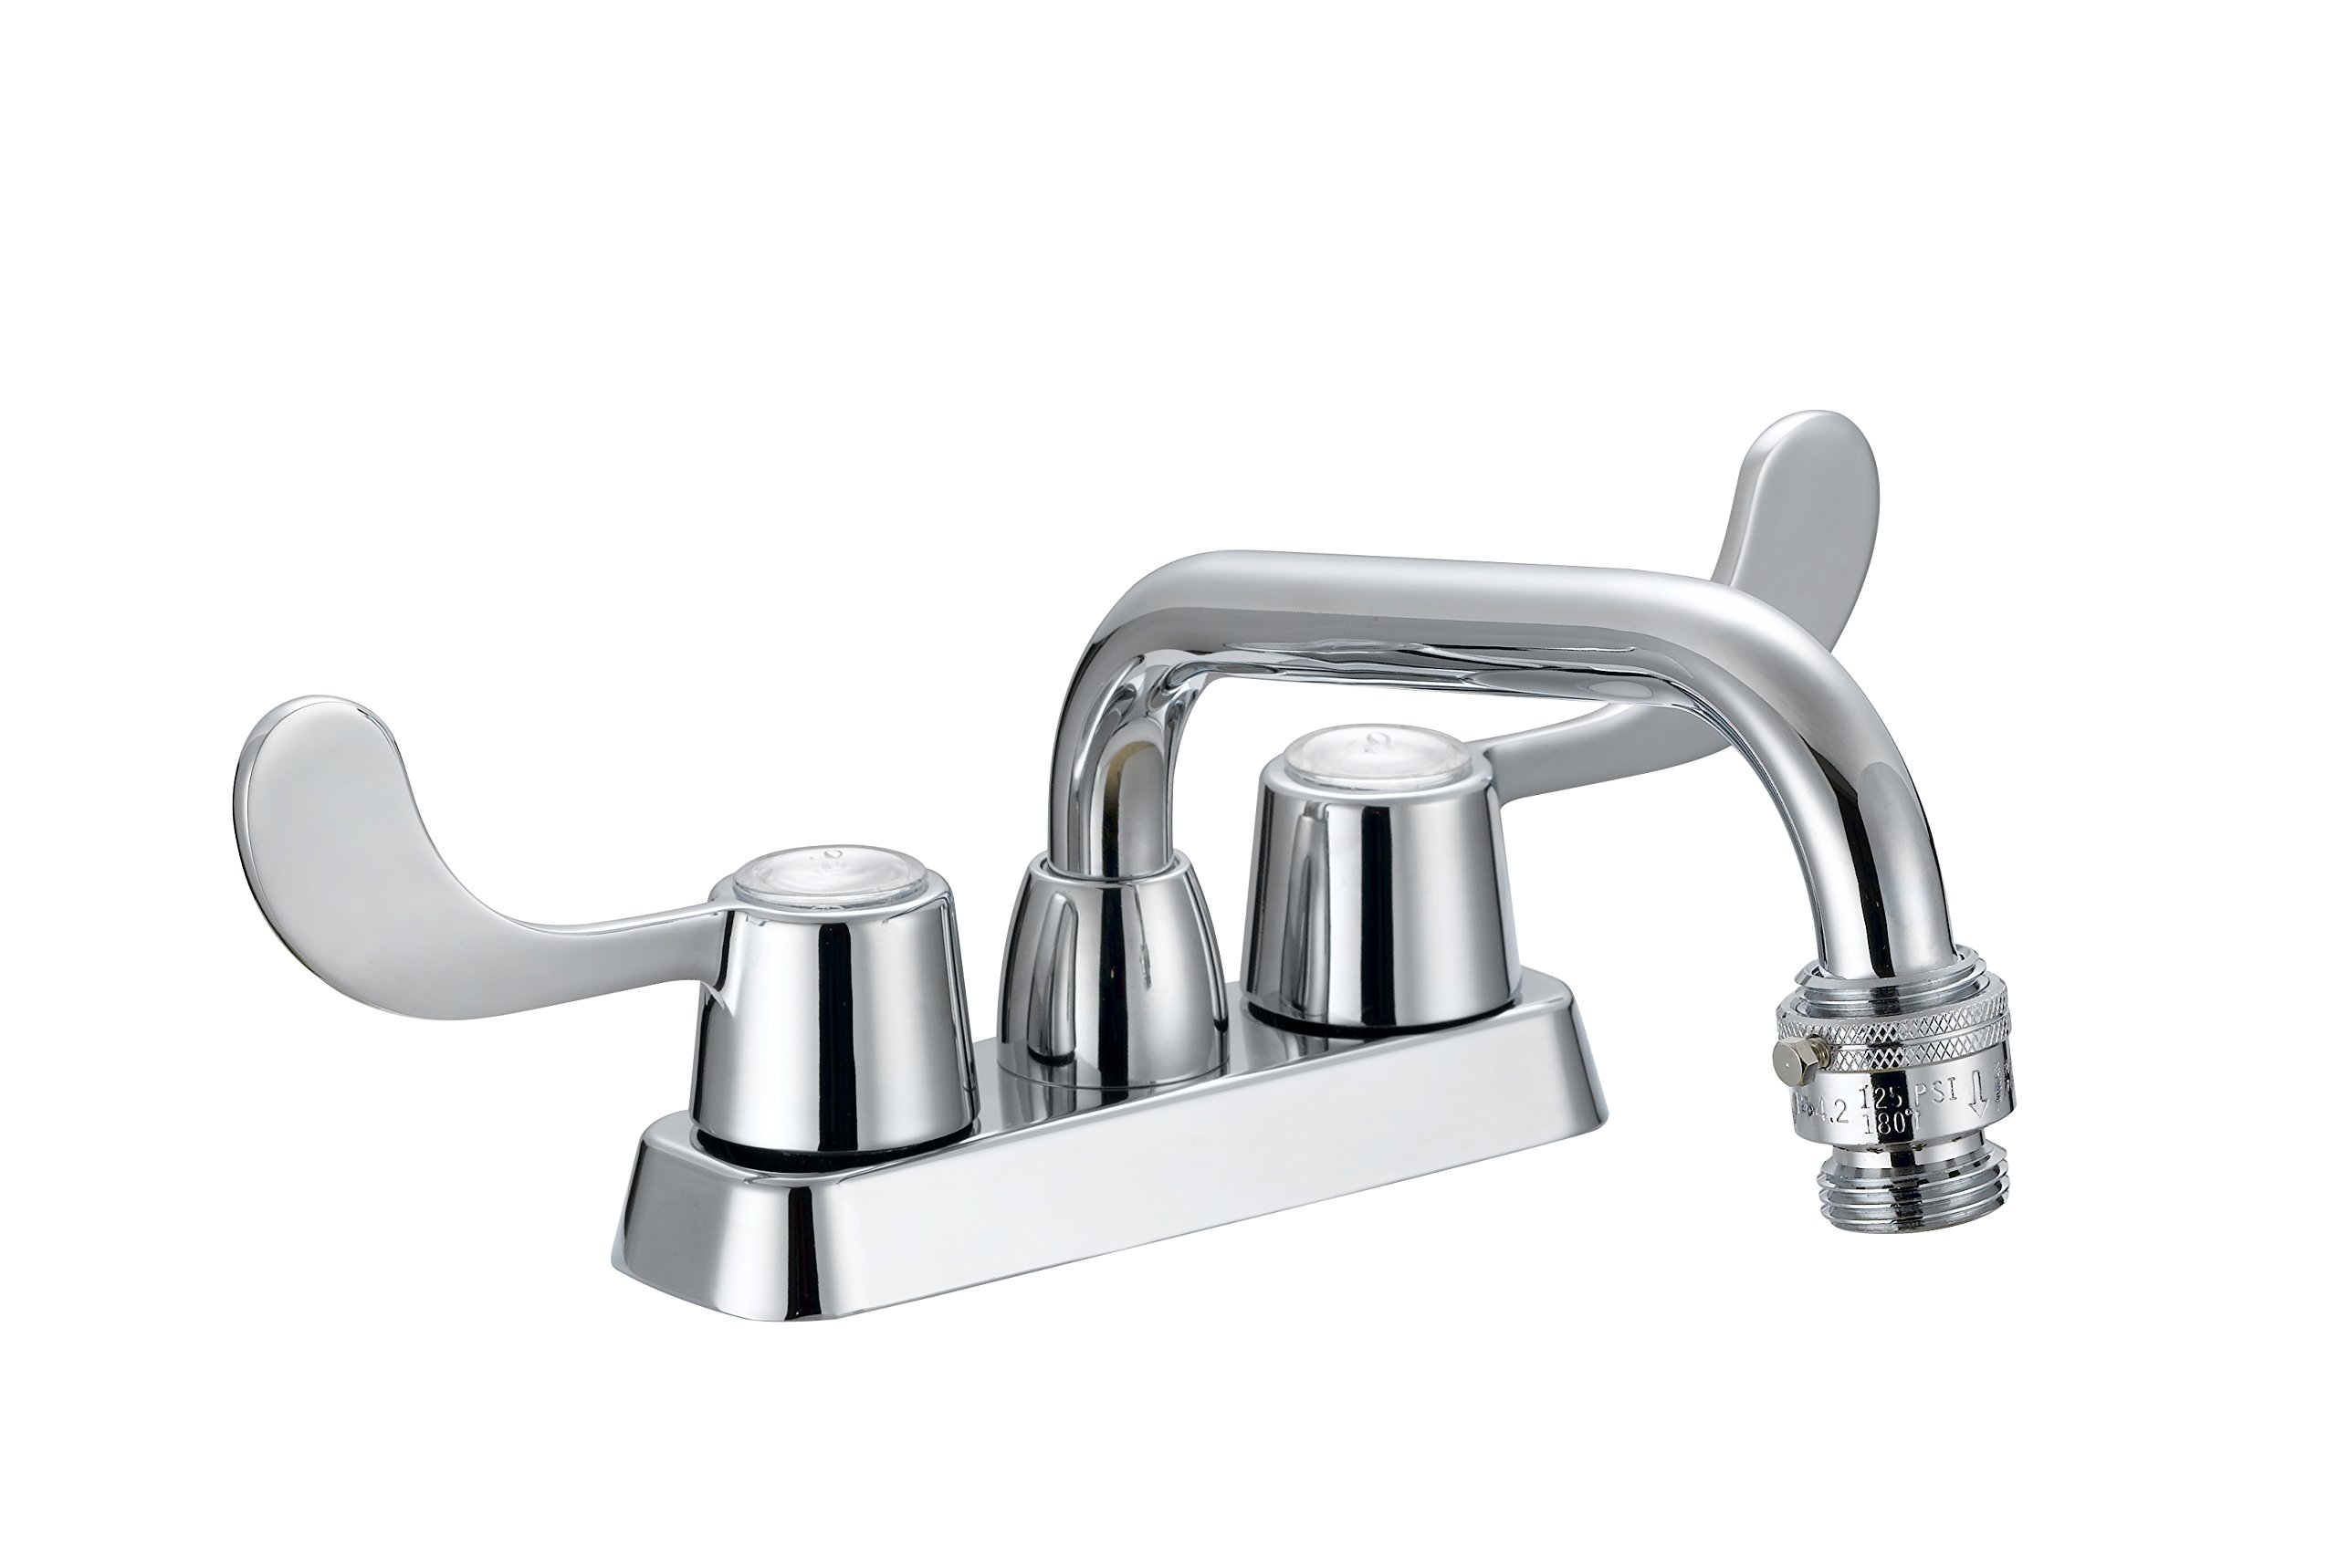 LDR 013 52280CP Laundry Faucet, Heavy Duty, Double Handles, Vacuum Breaker, Chrome by LDR Industries (Image #1)